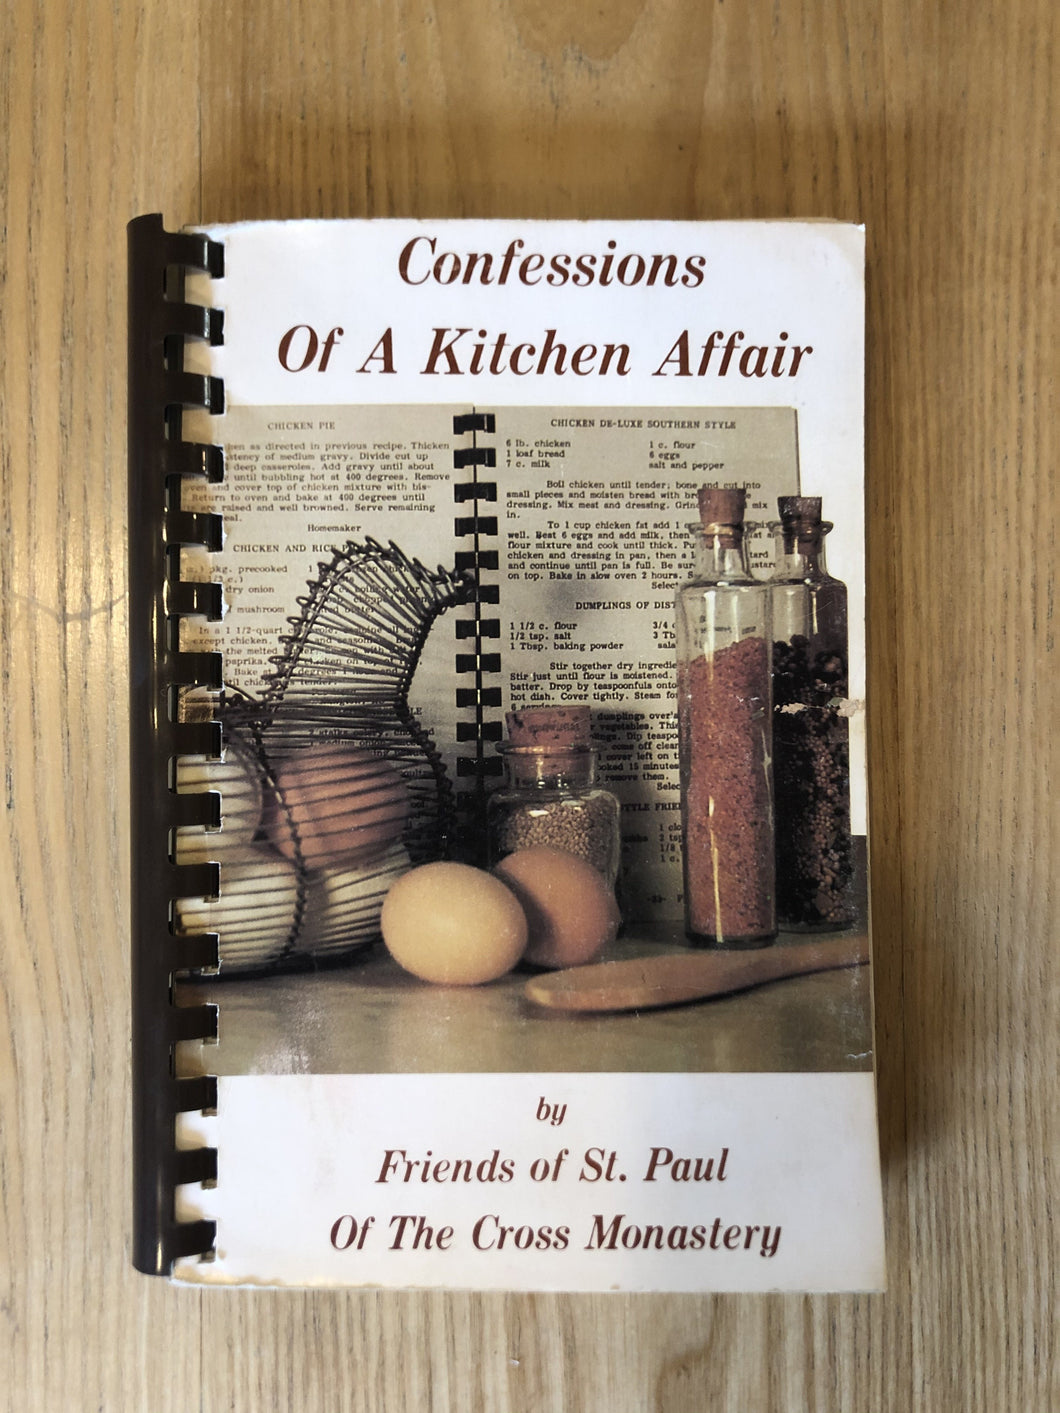 Confessions of a Kitchen Affair